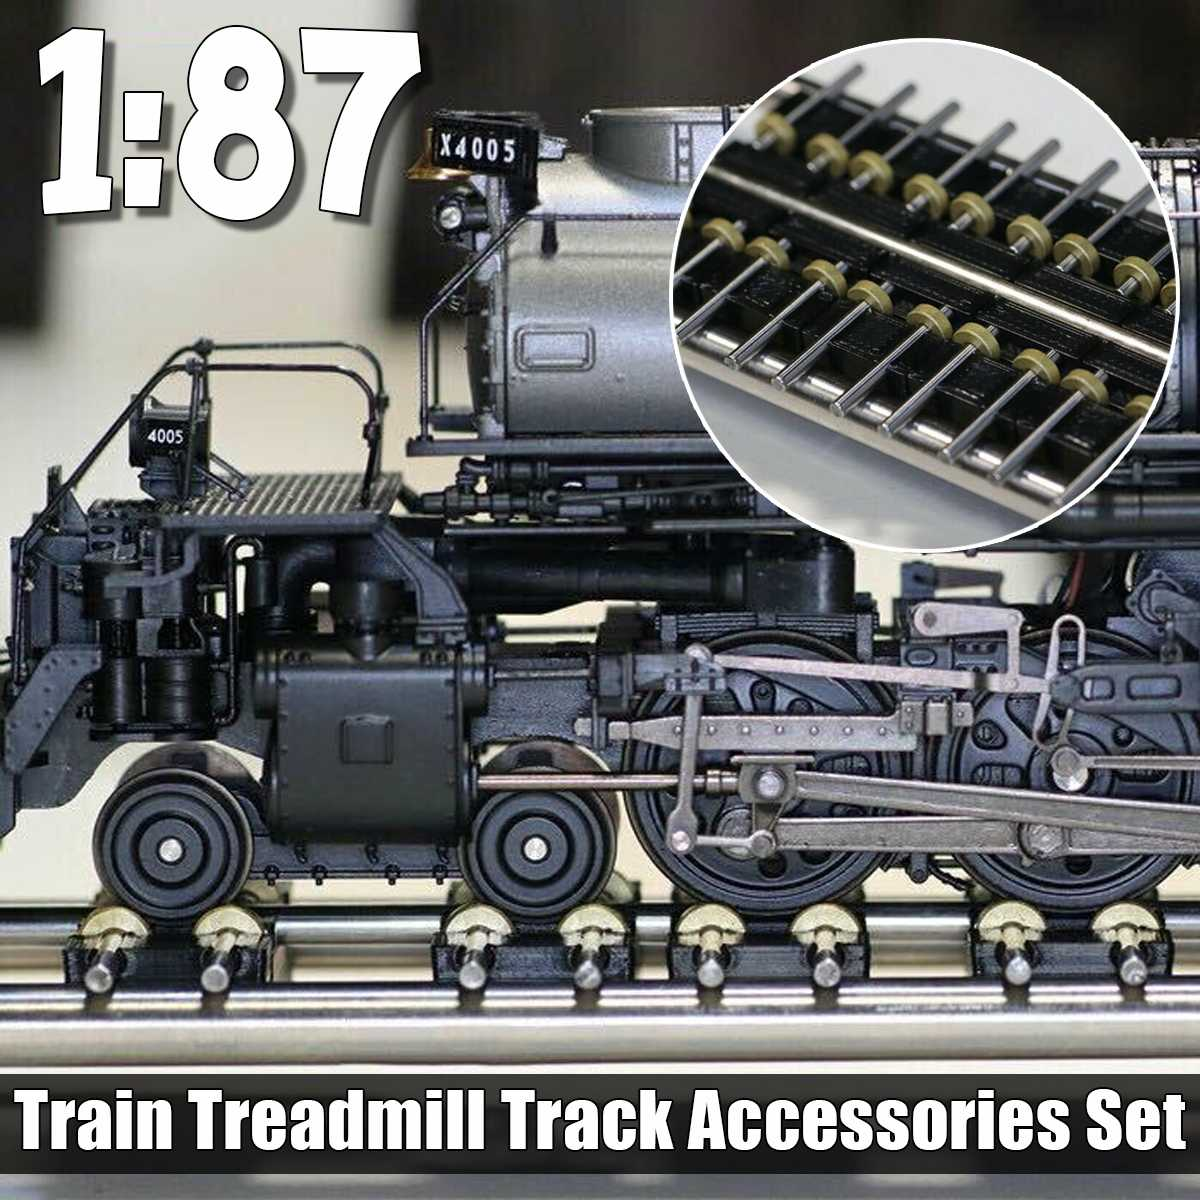 NEW 1/87 Model Train Ho Scale Accessories One-axis Module Treadmill Treadmill And Connecting Line